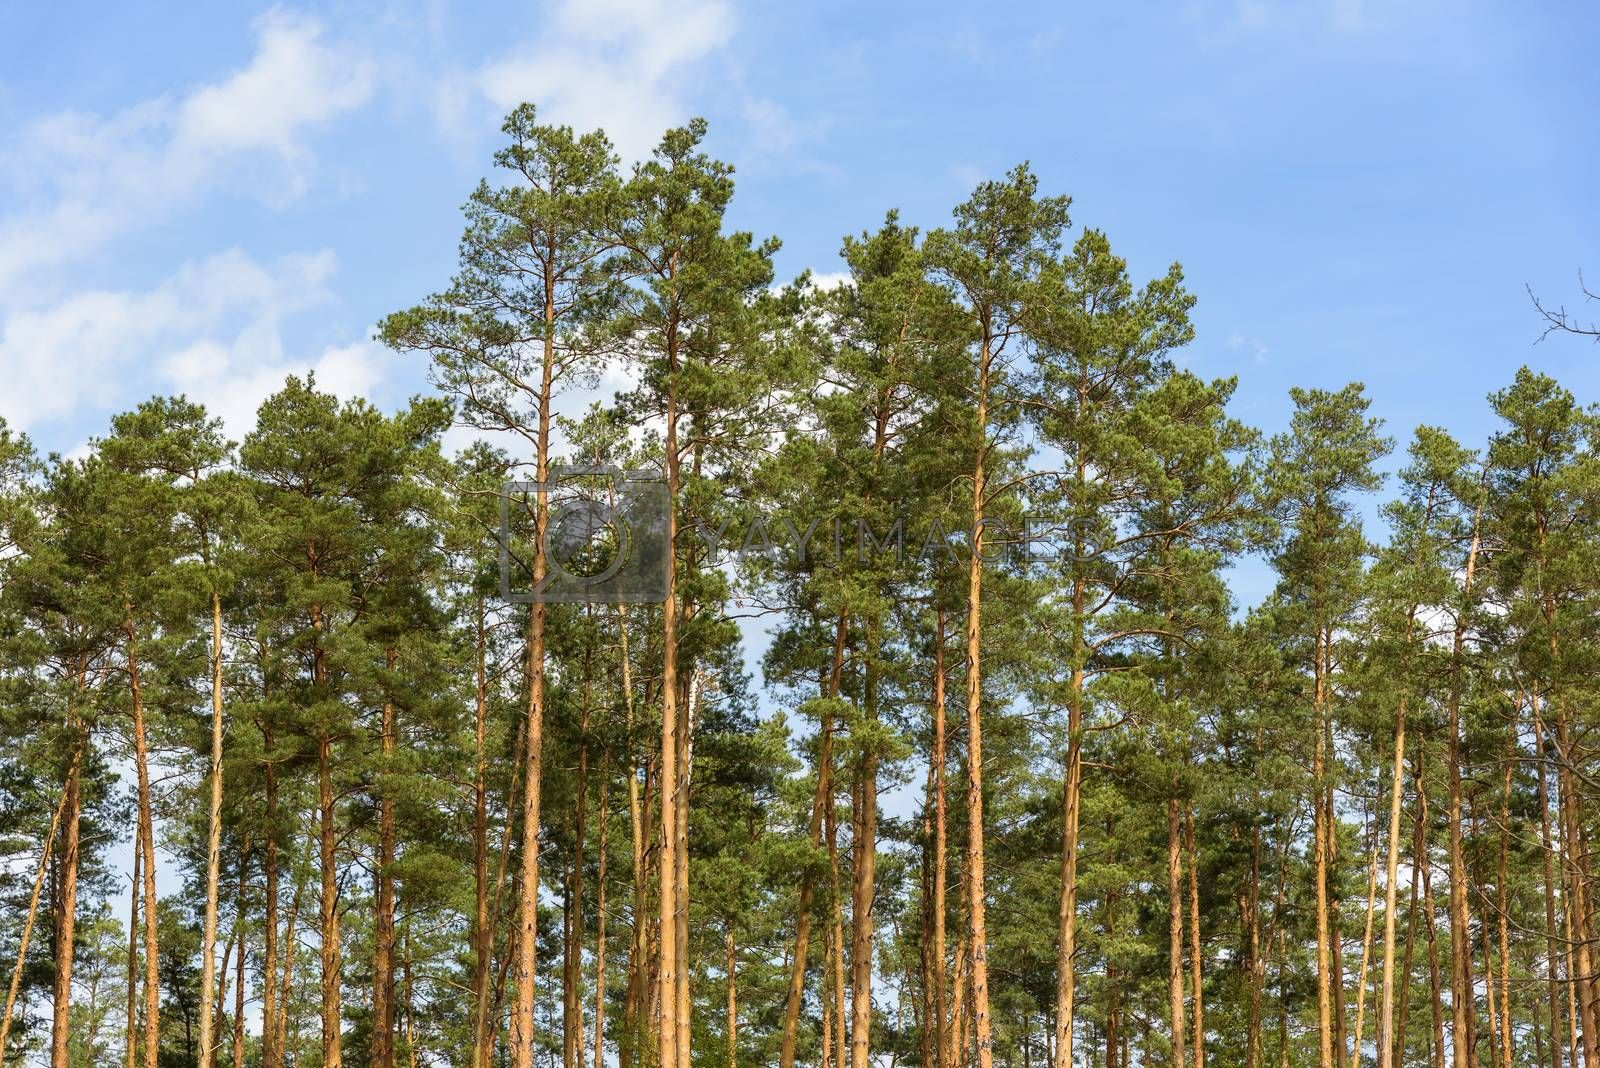 Natural forest background made of tall pine trees